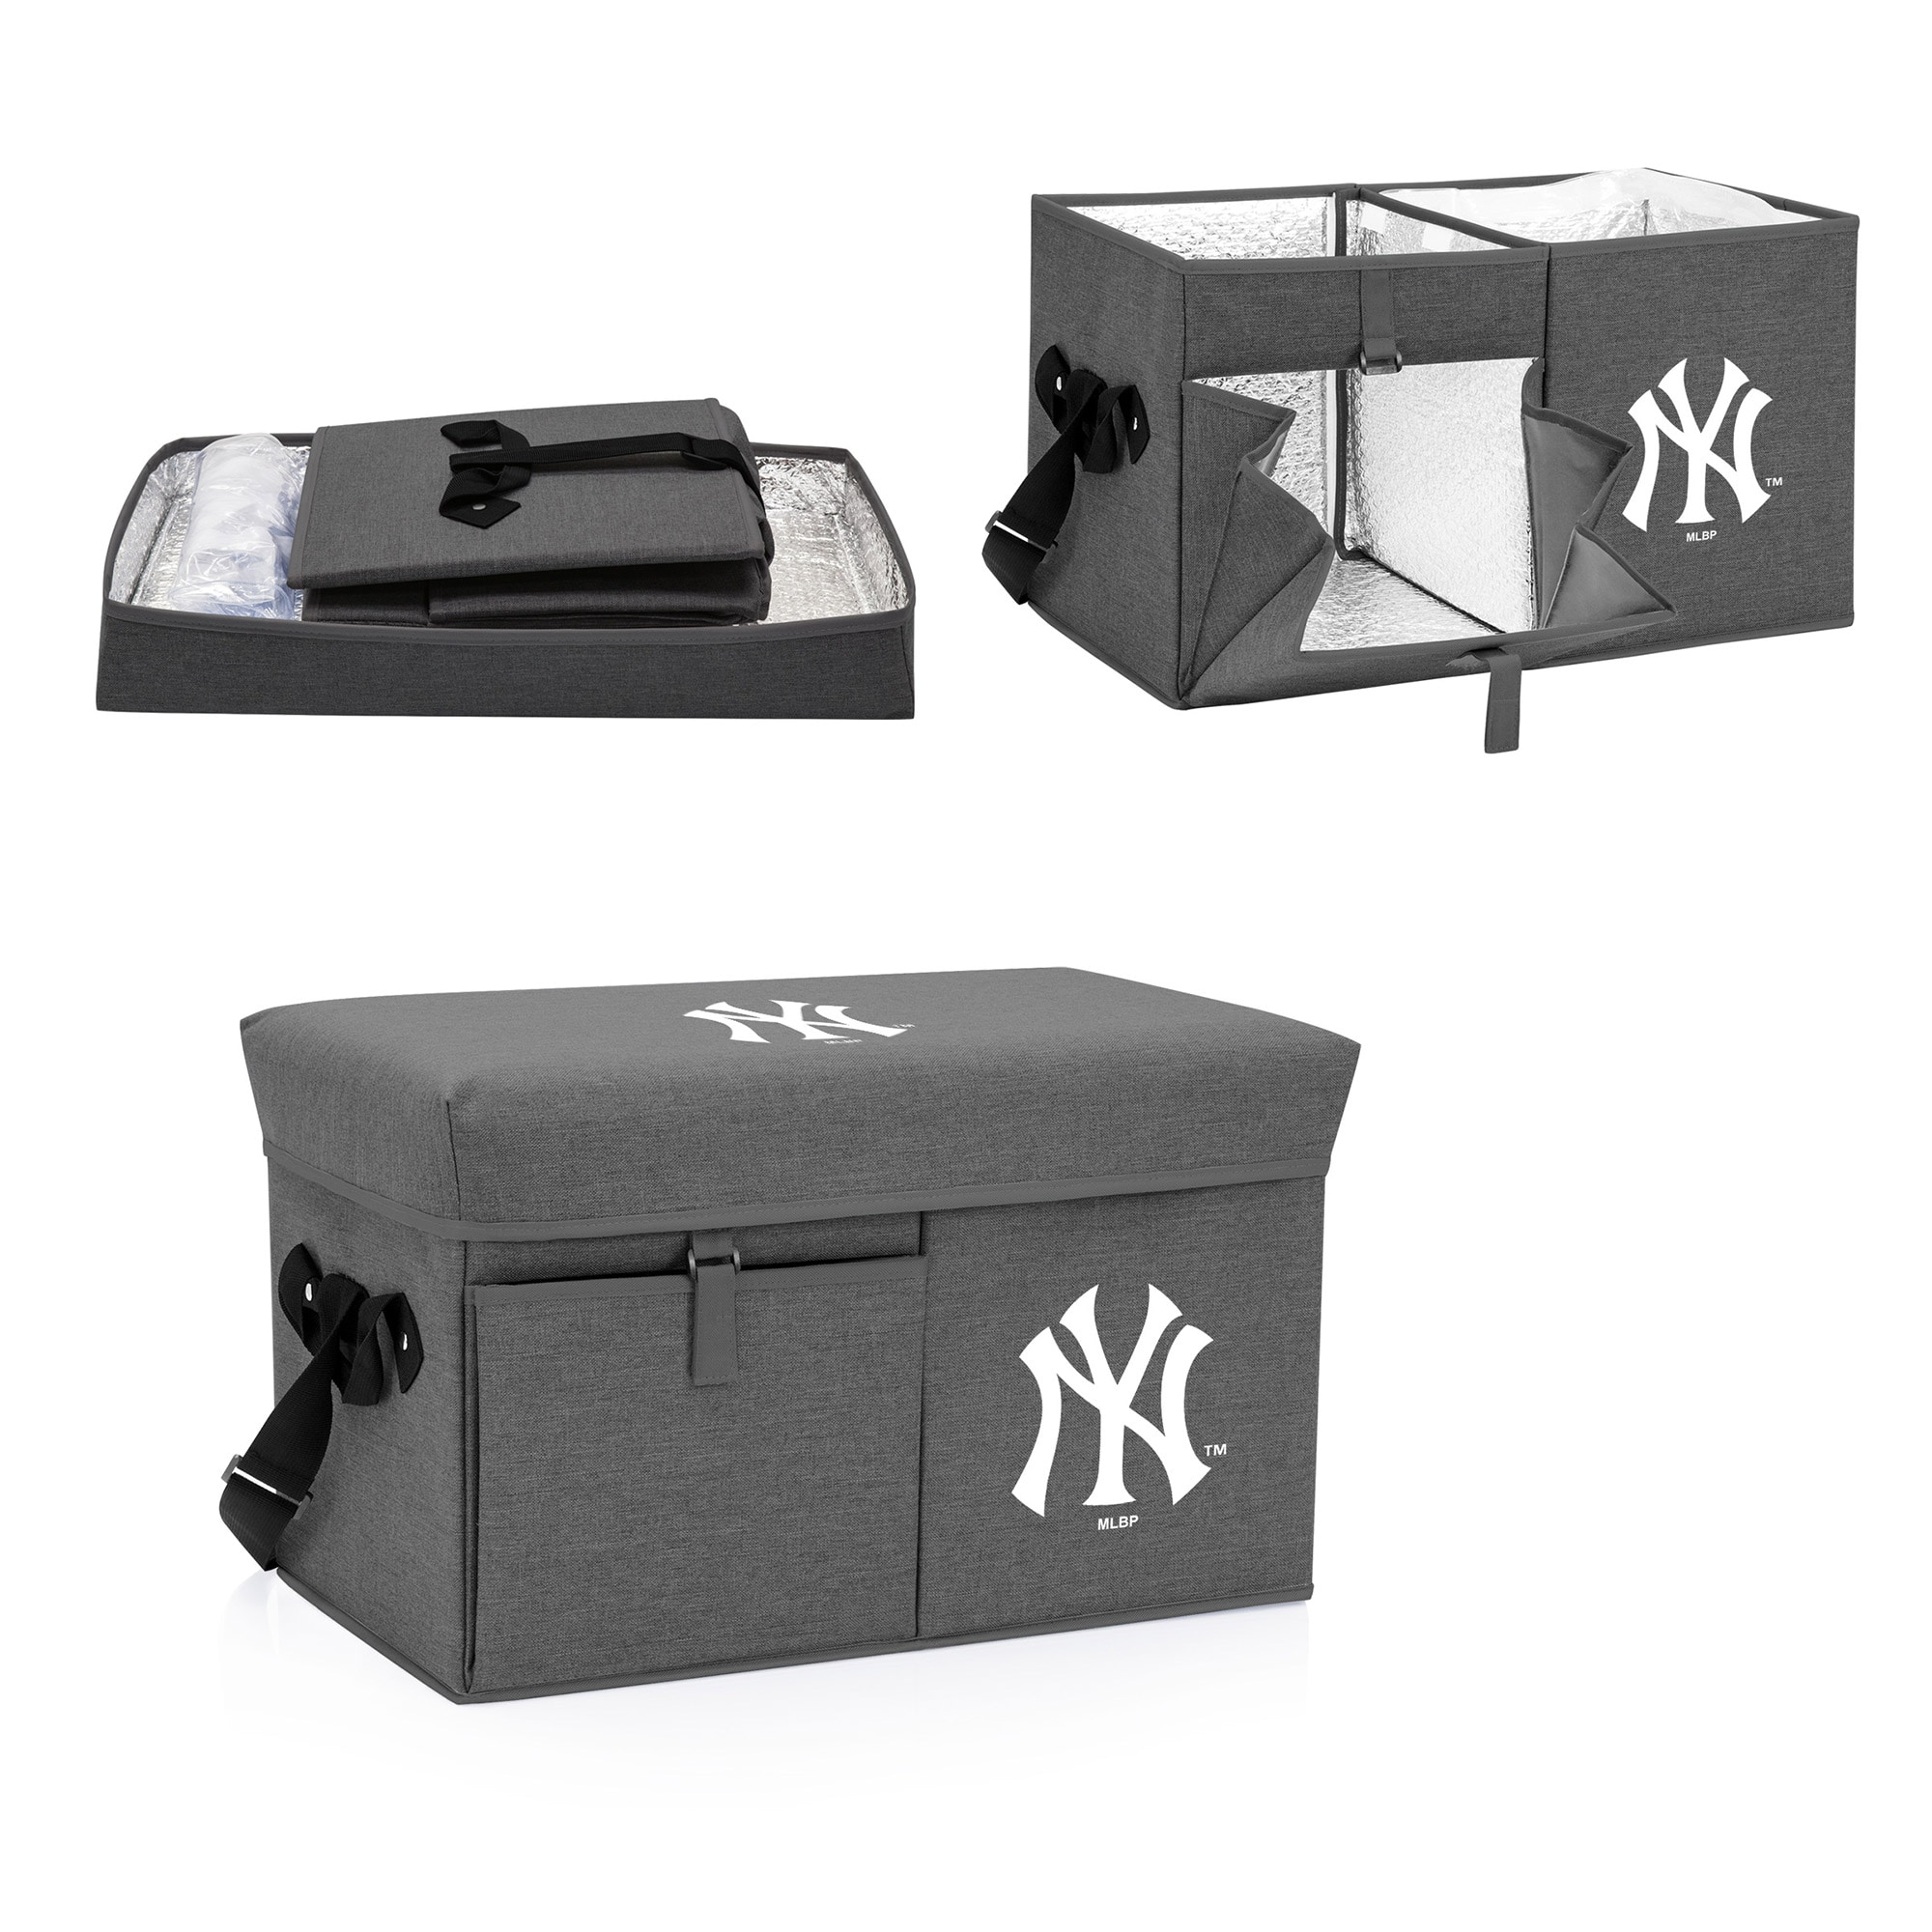 New York Yankees Ottoman Cooler & Seat - Gray